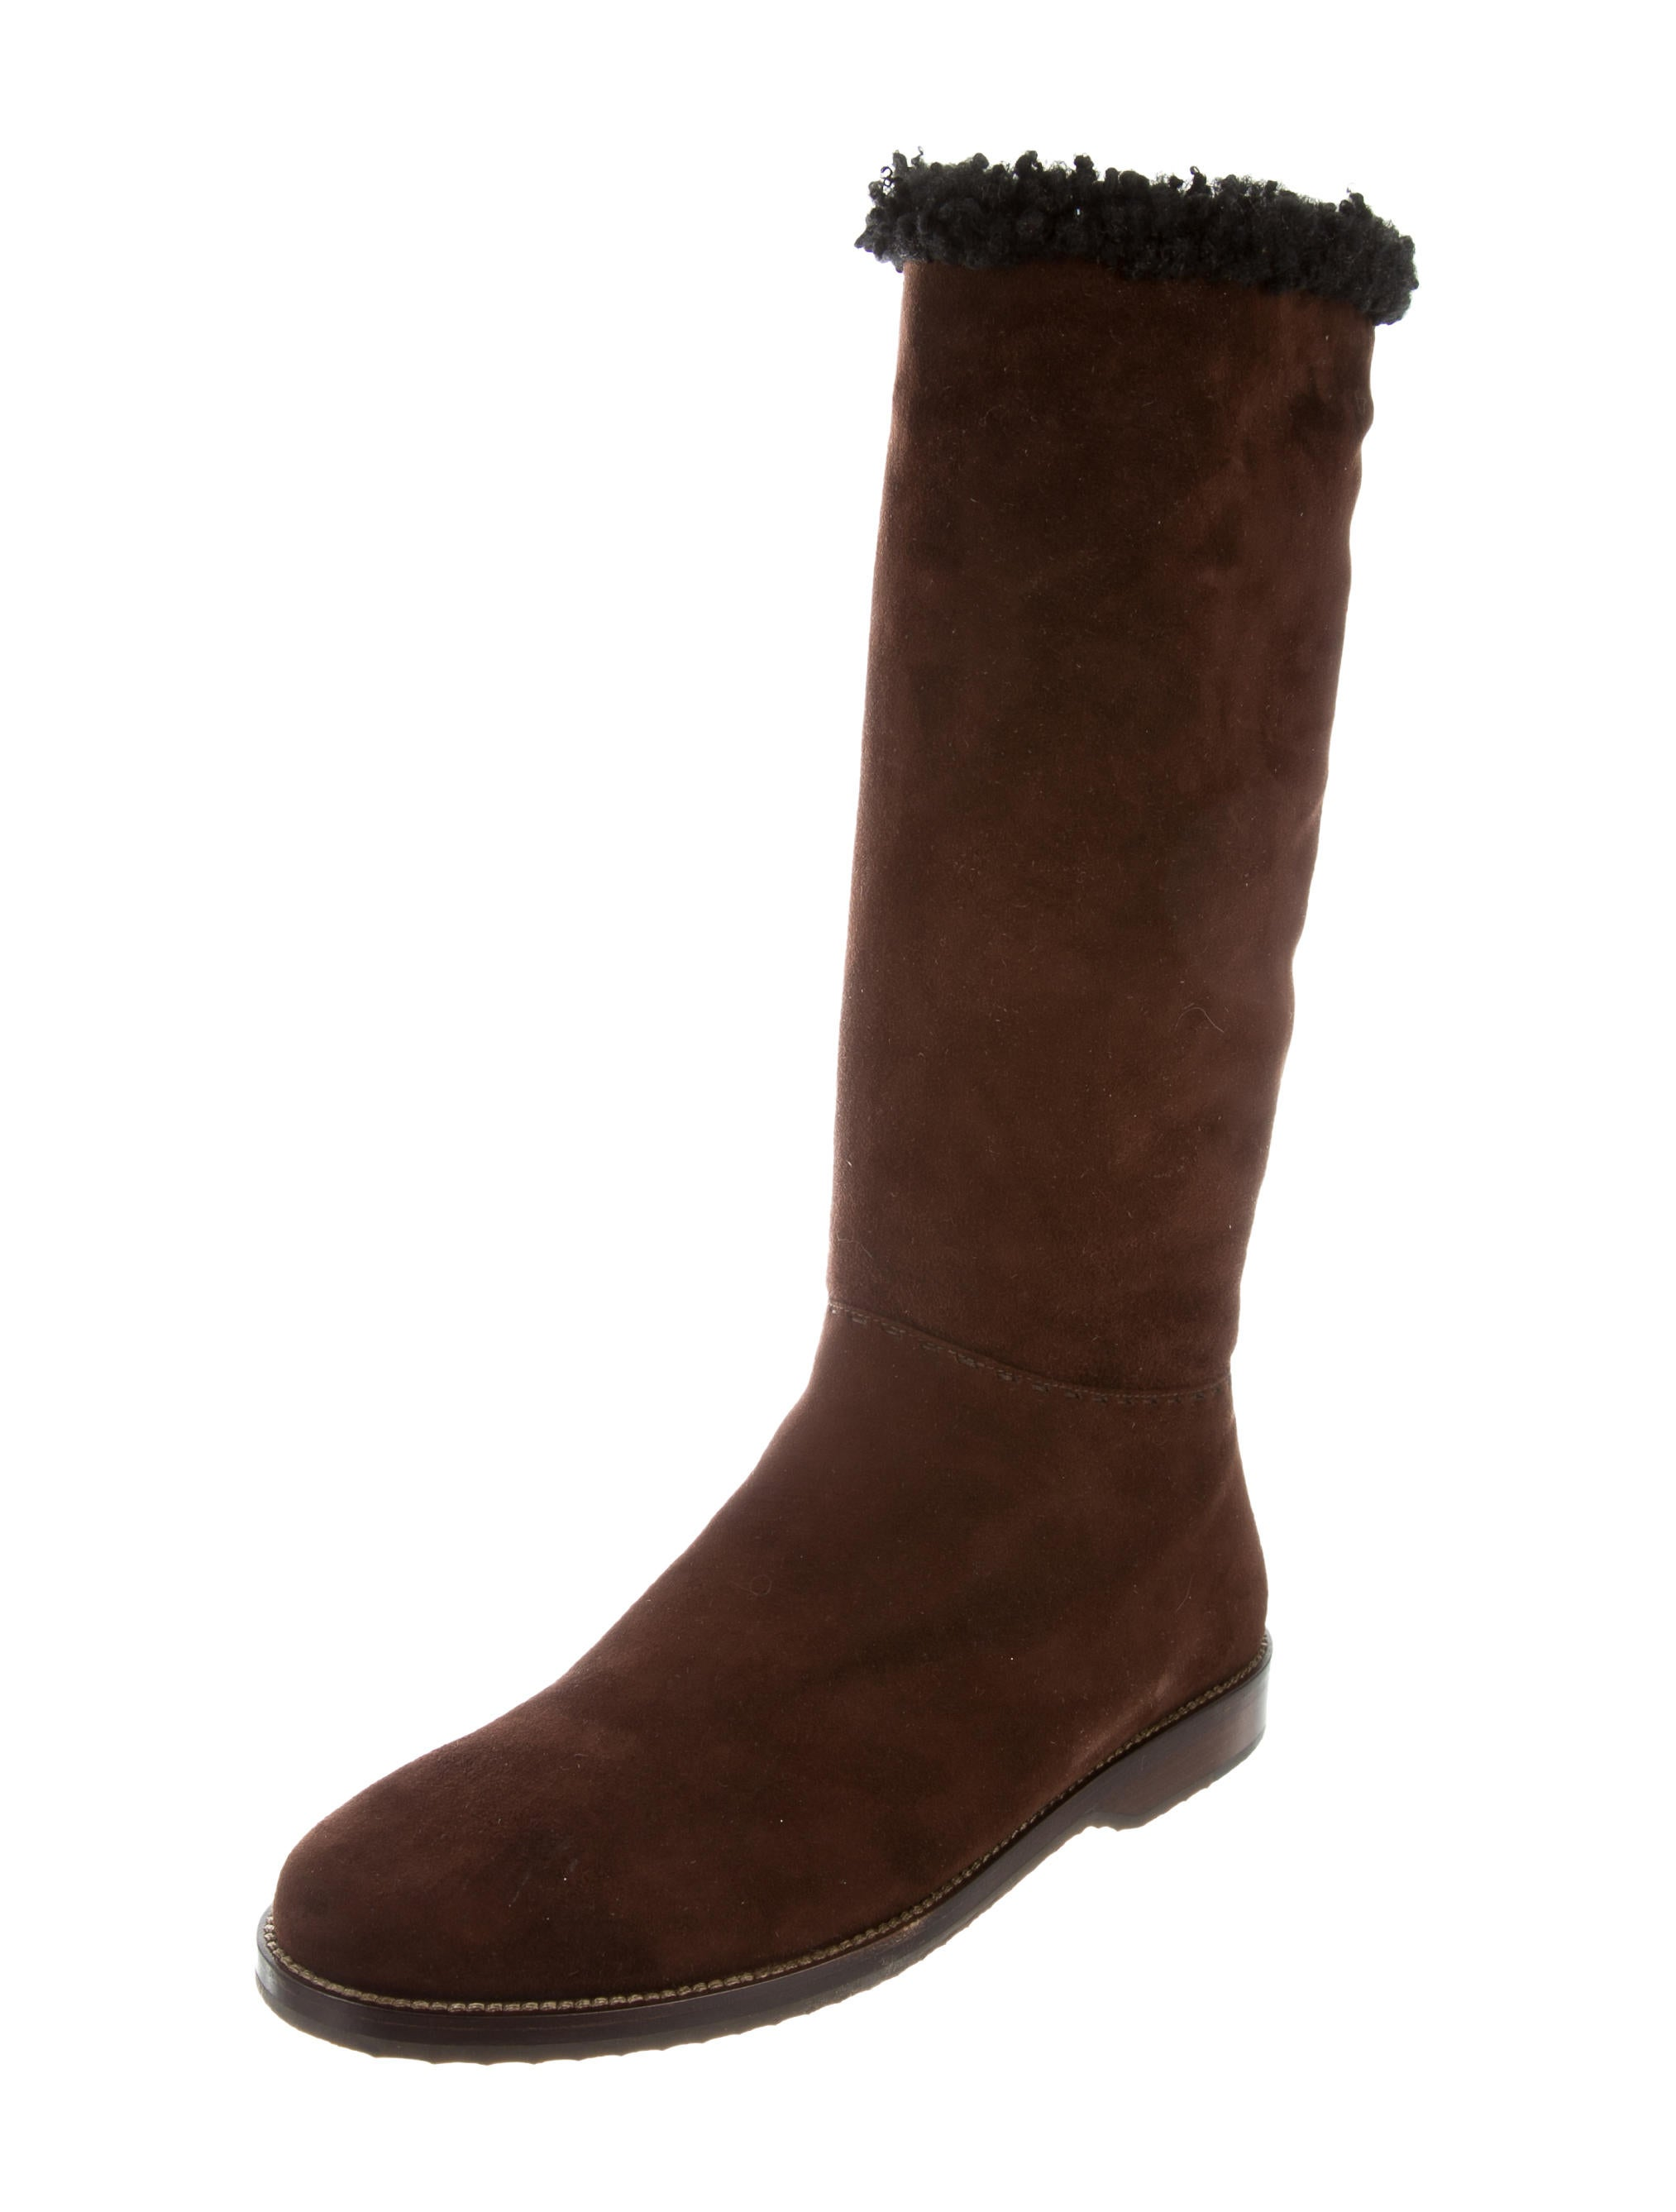 outlet new Henry Cuir Suede Knee-High Boots low price fee shipping for sale cY1KZN